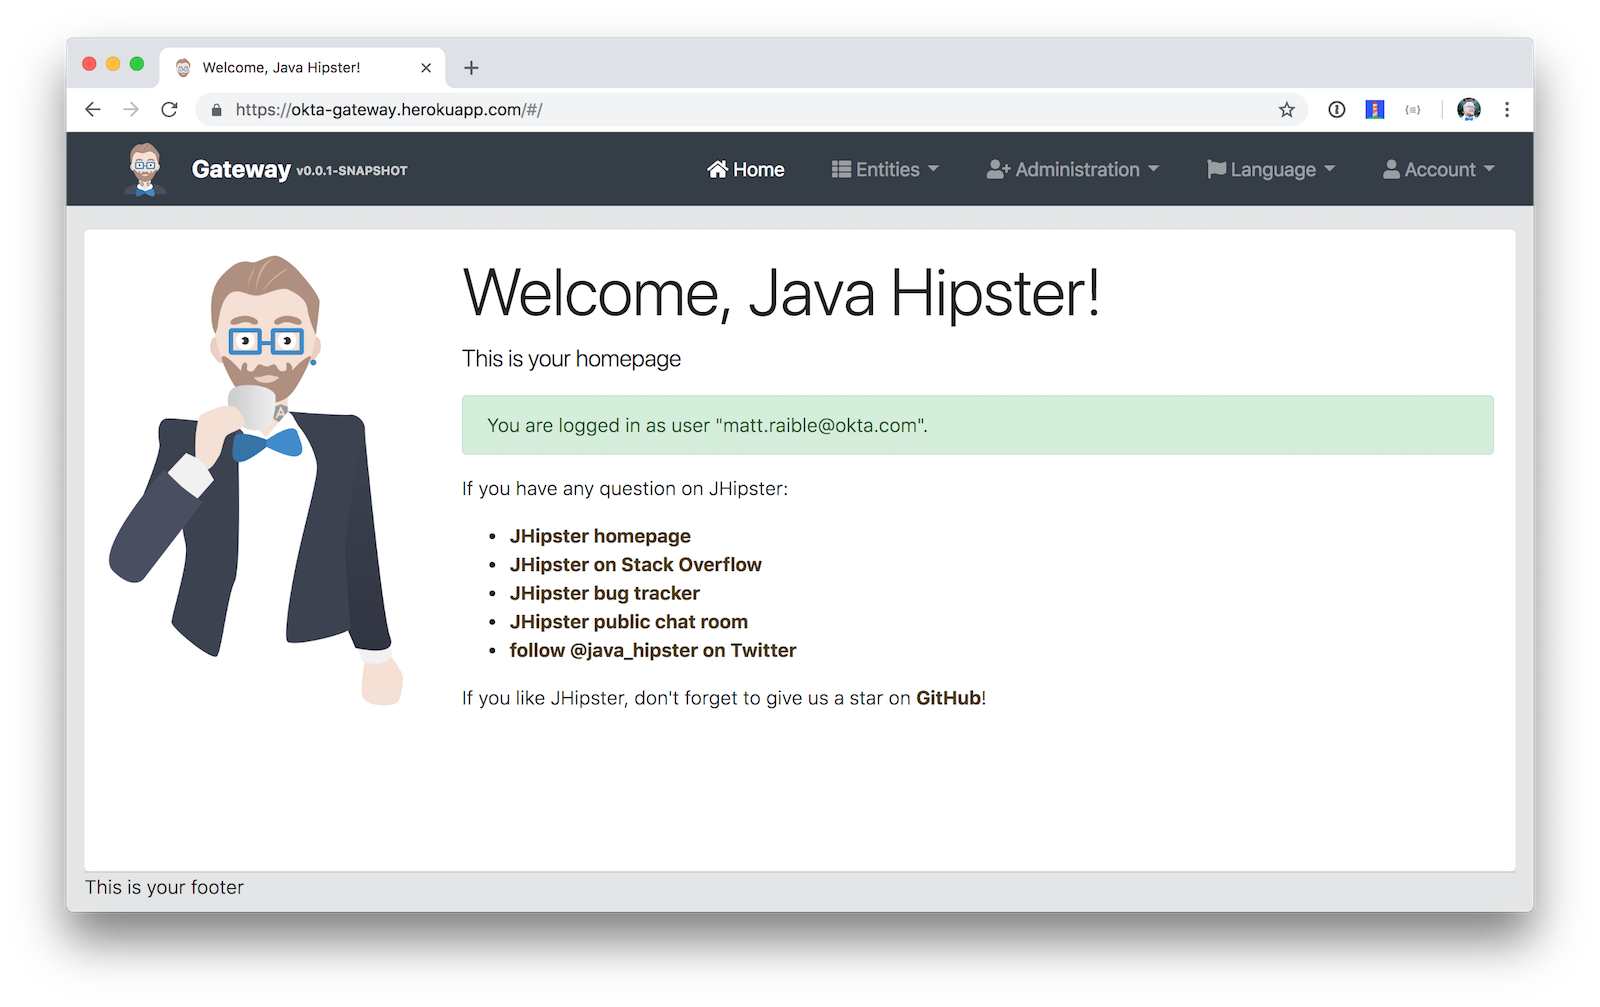 Welcome, Java Hipster